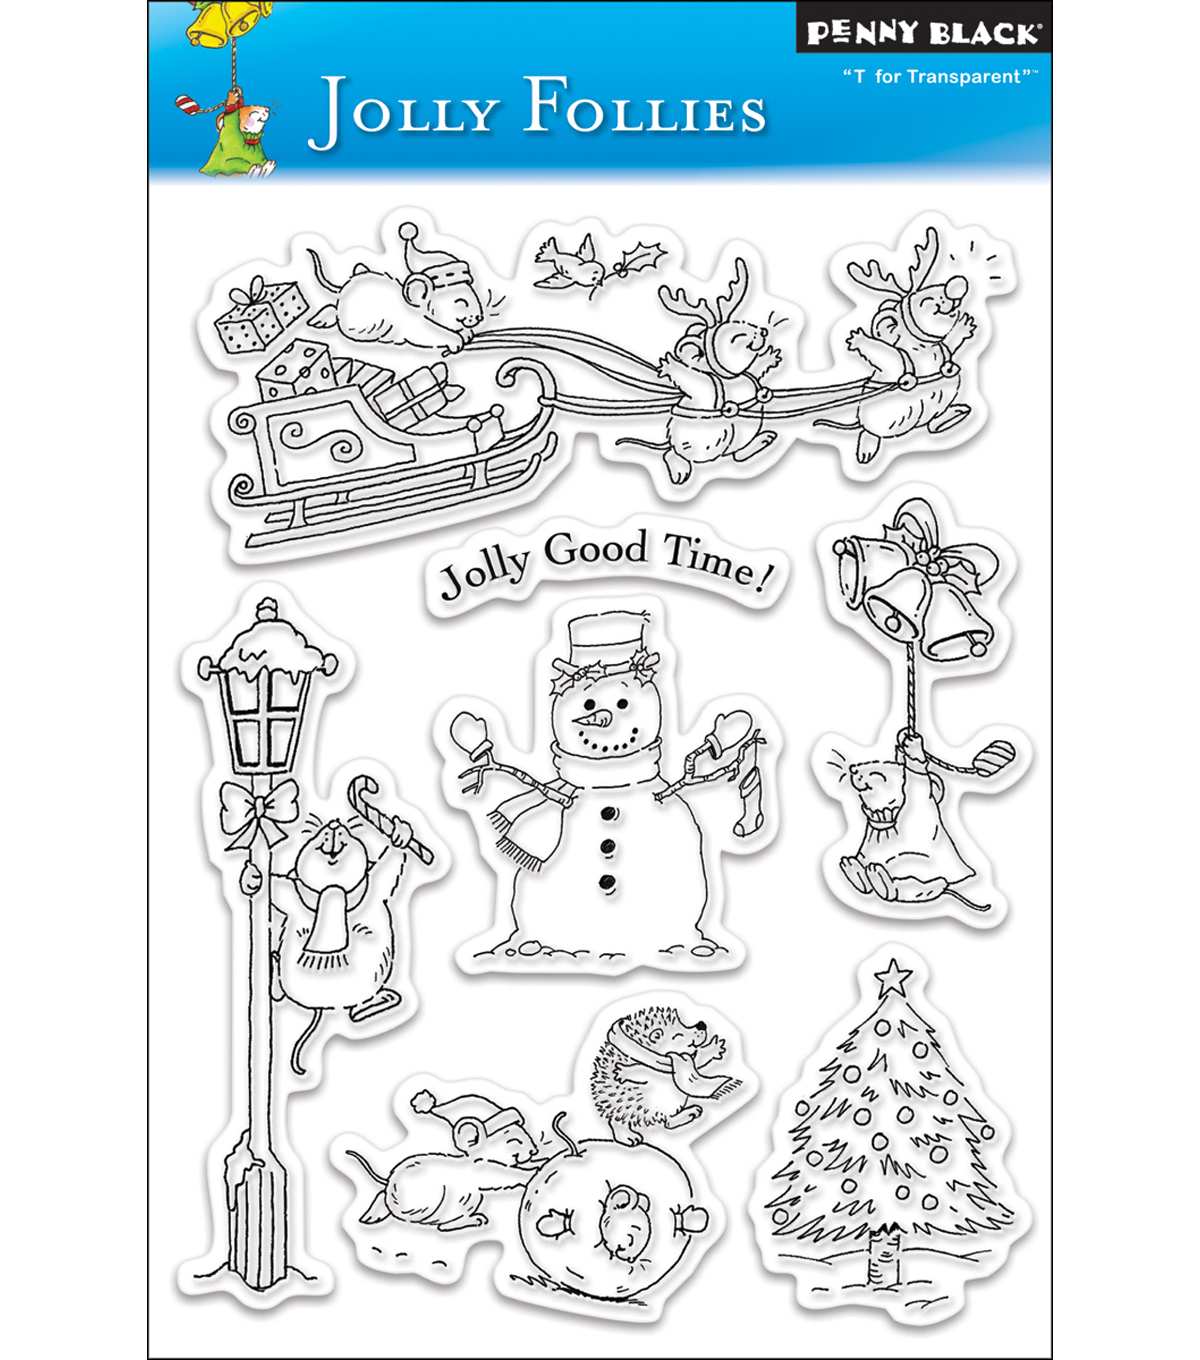 Penny Black Clear Stamp 5\u0022X7.5\u0022 Sheet-Jolly Follies